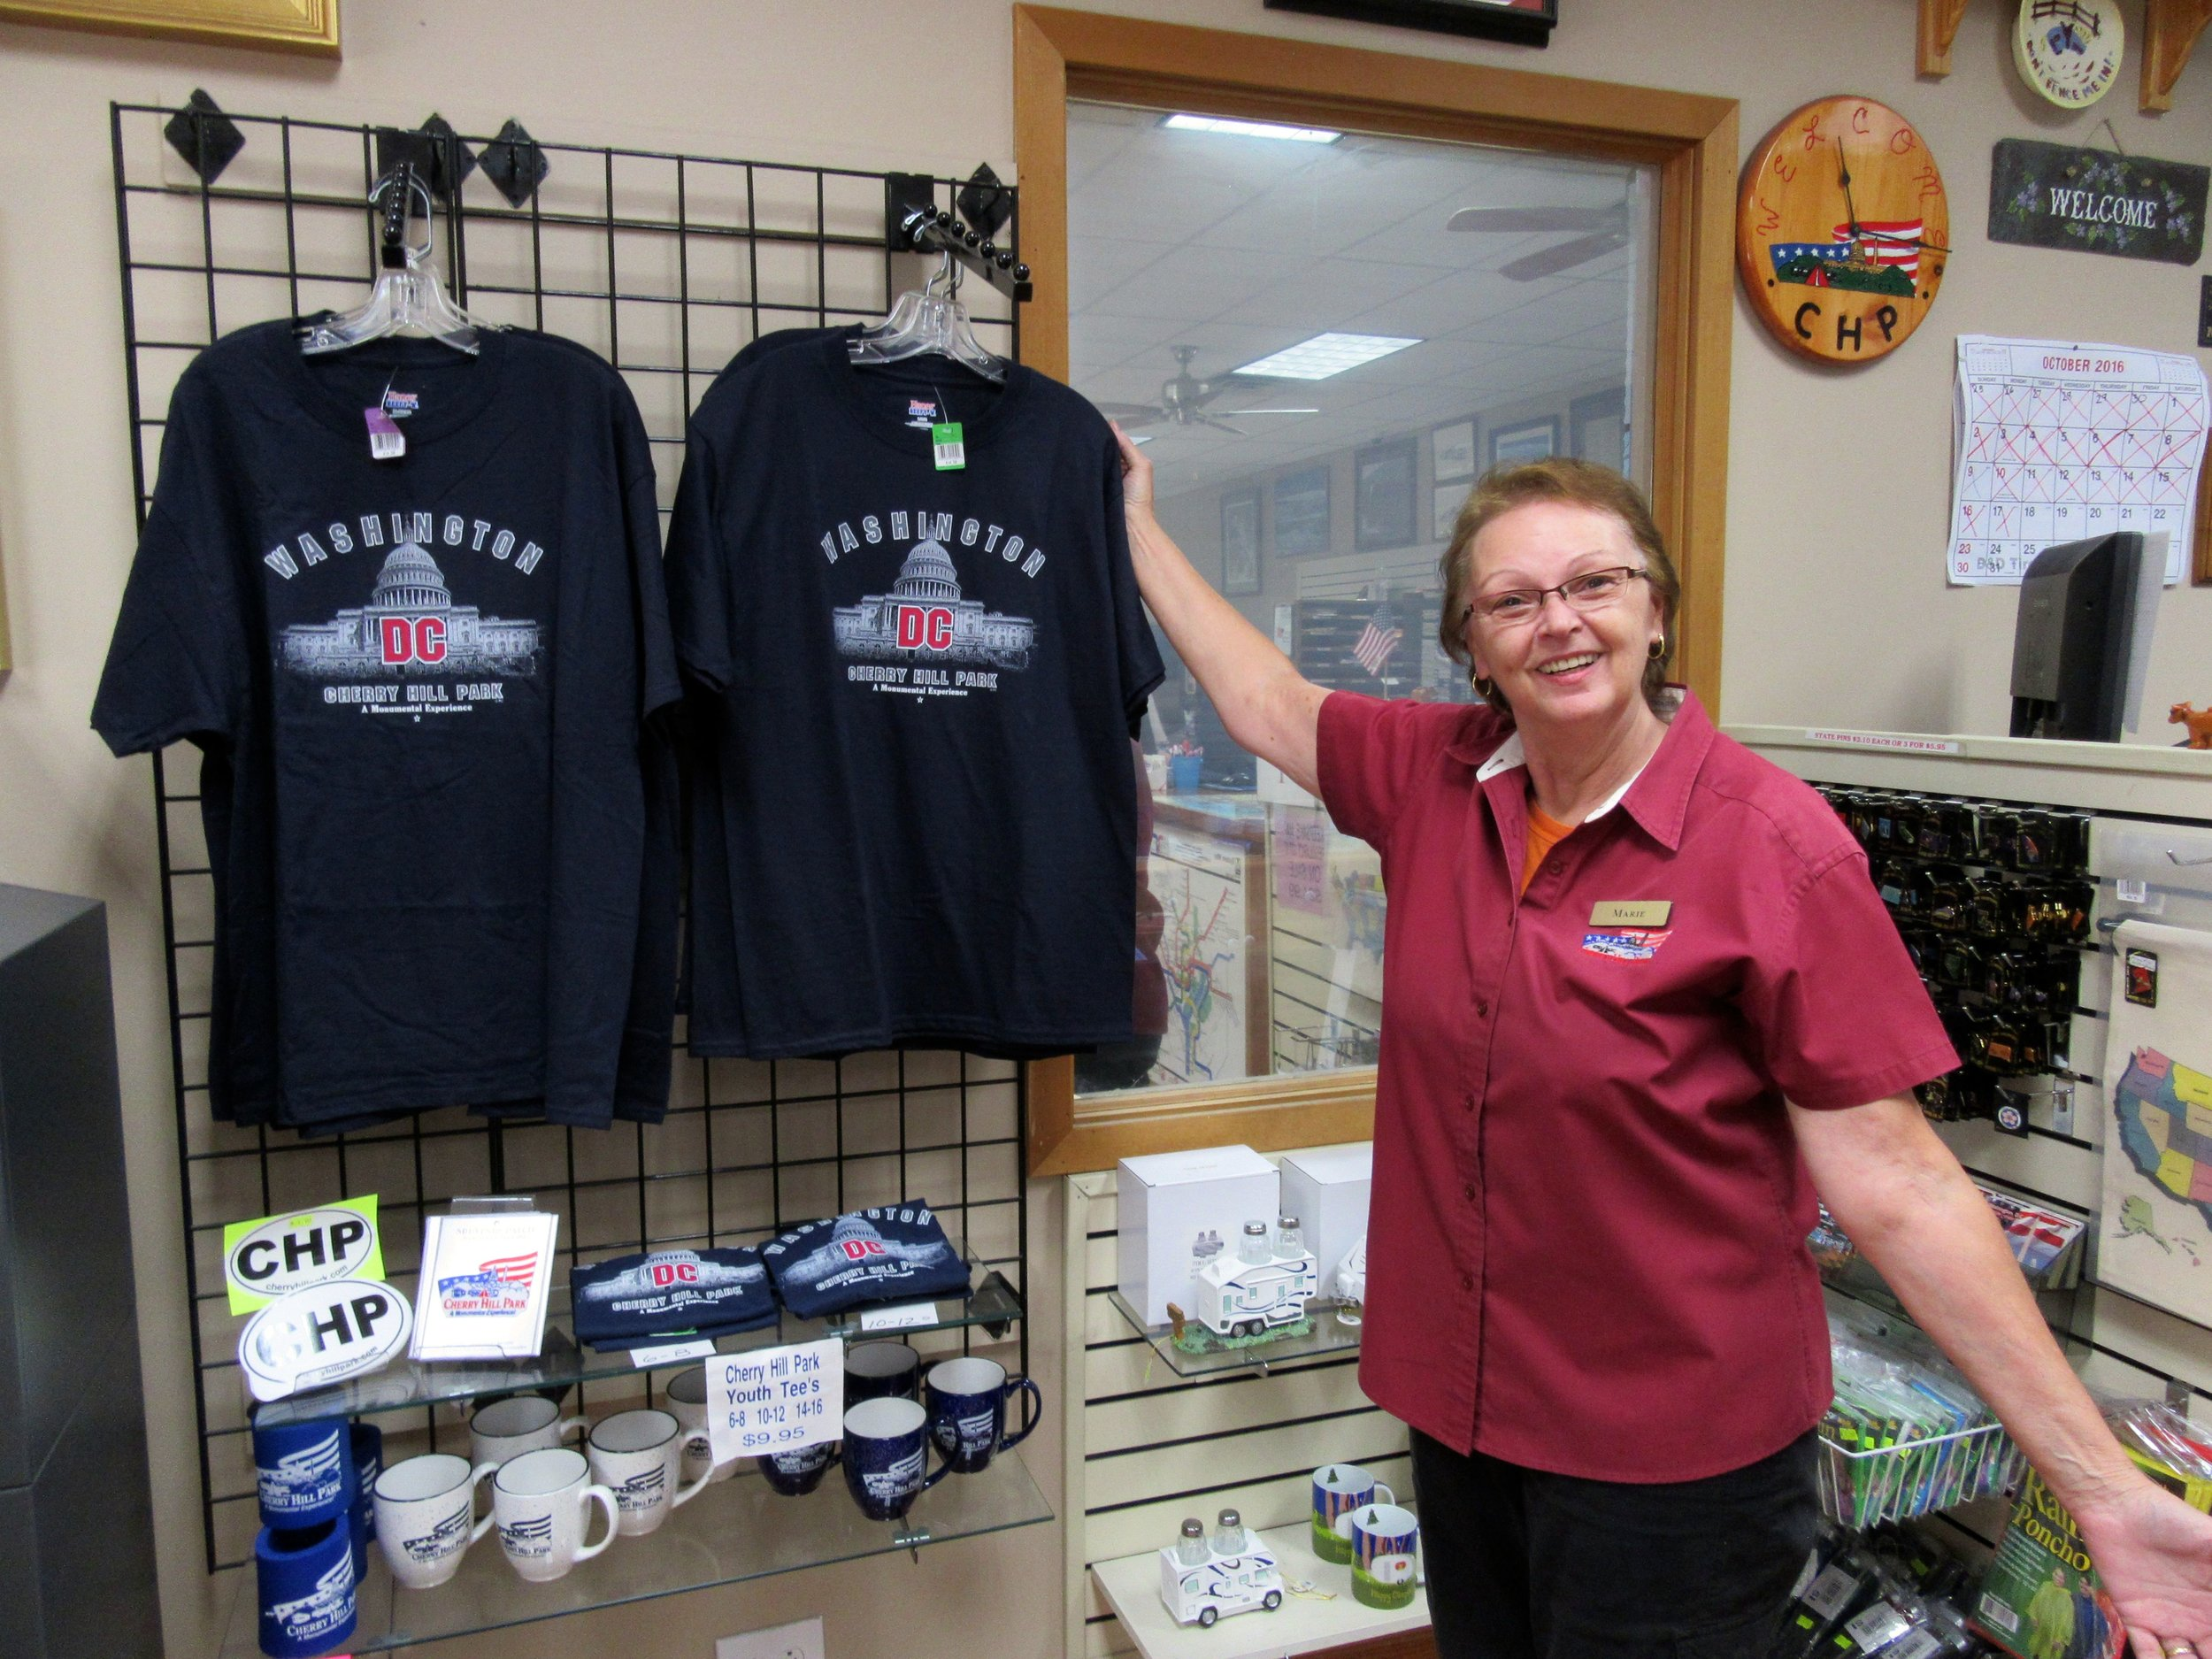 Employee Poses Next to Washington DC T-Shirts in Cherry Hill Park's Souvenir Store